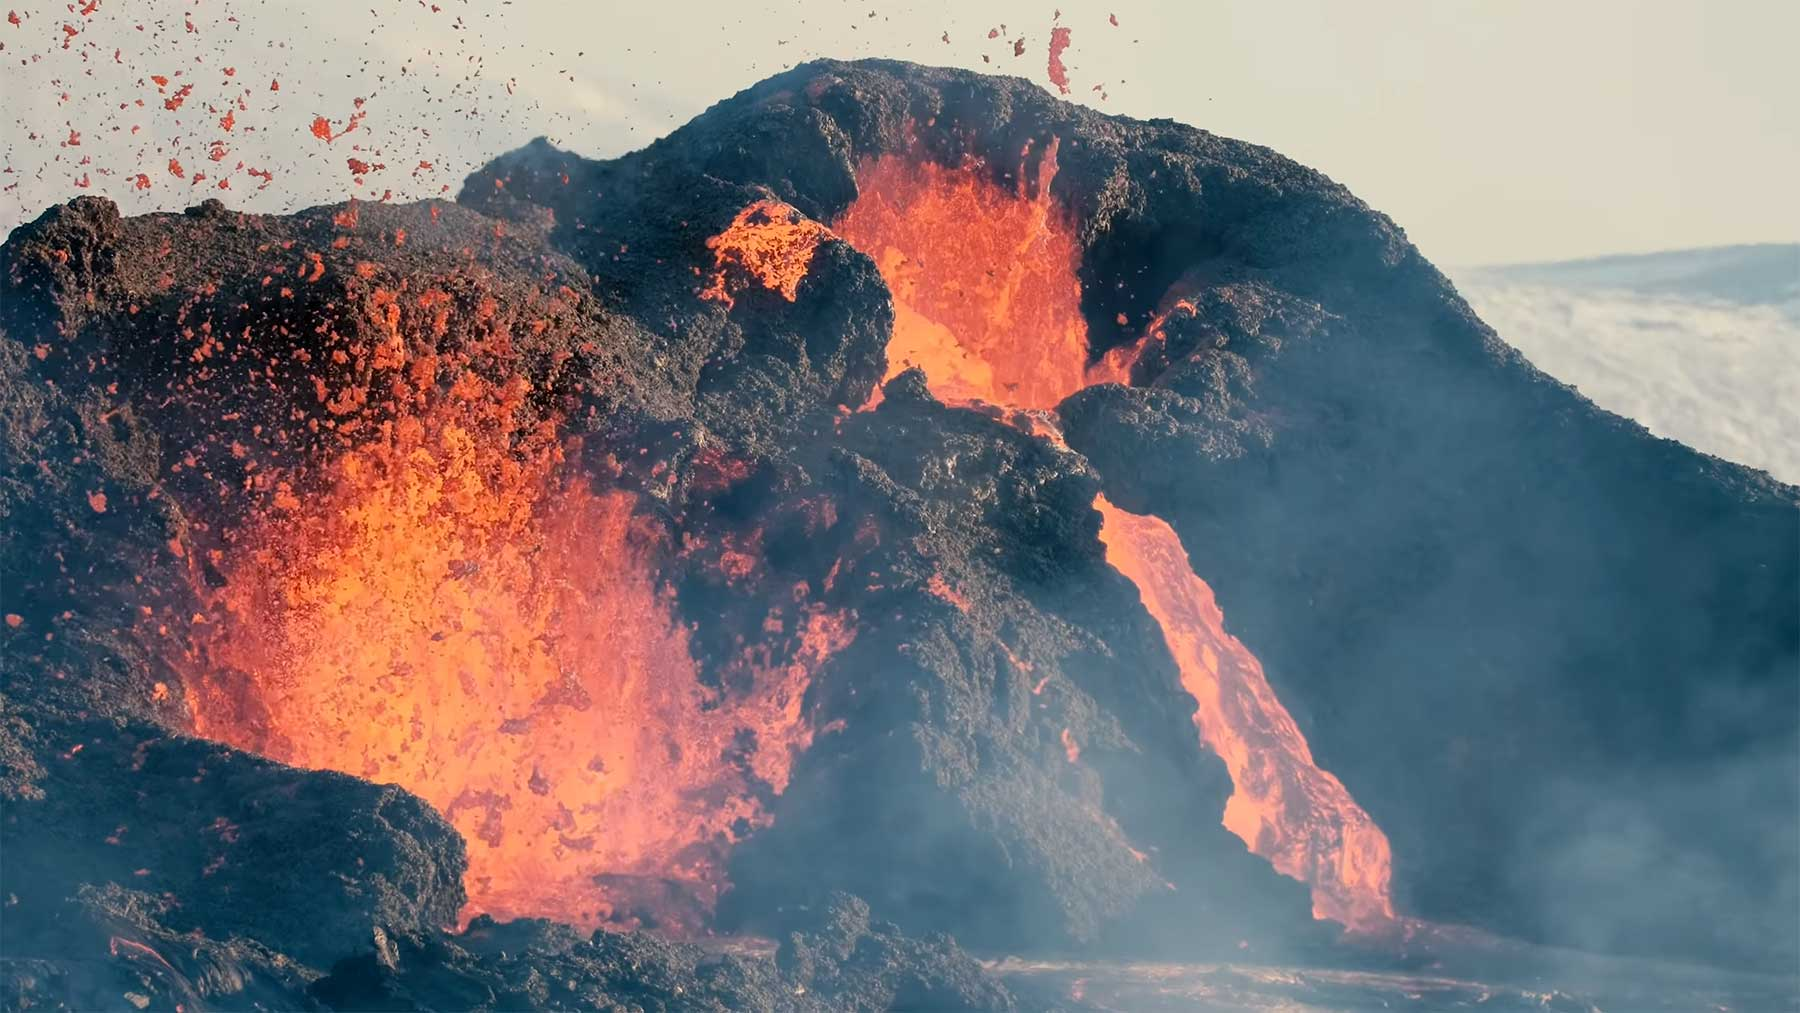 The Sound of Lava